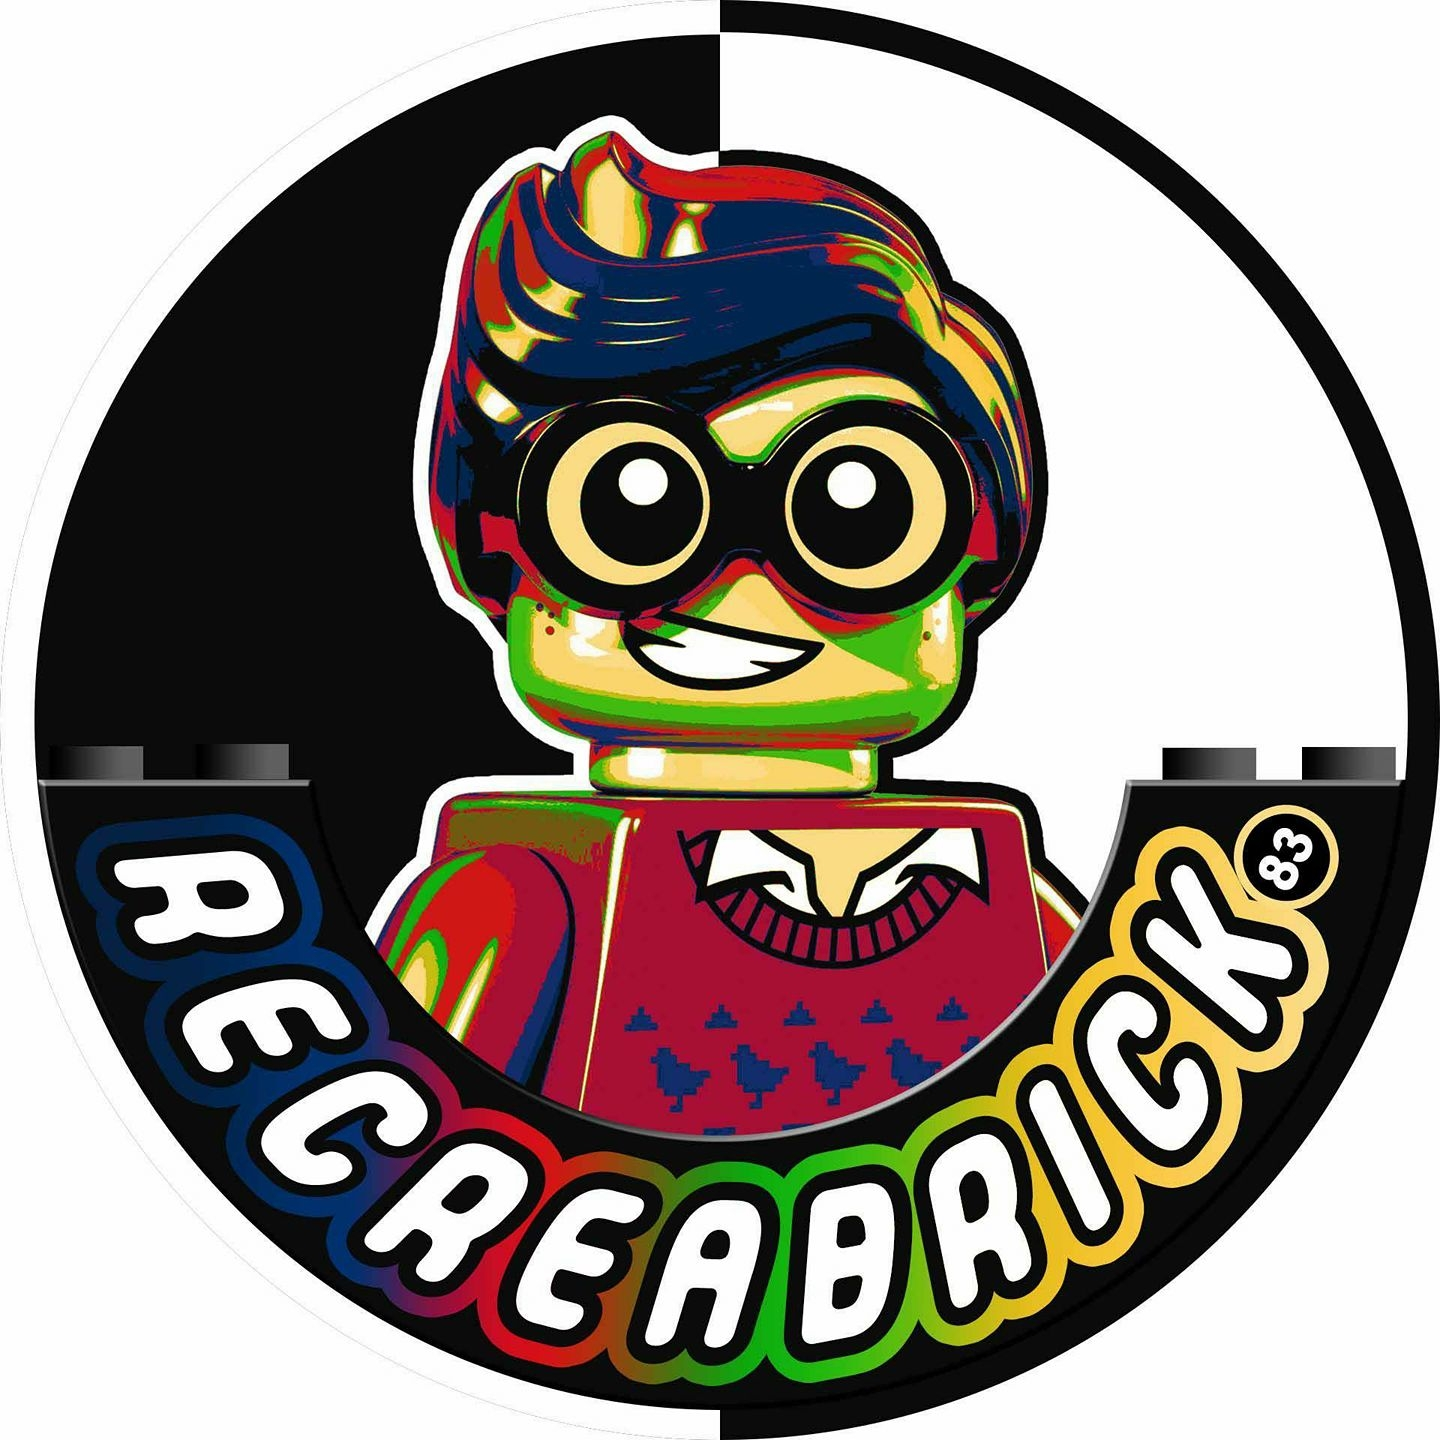 Association LEGO Récréabrick (83 - Var)